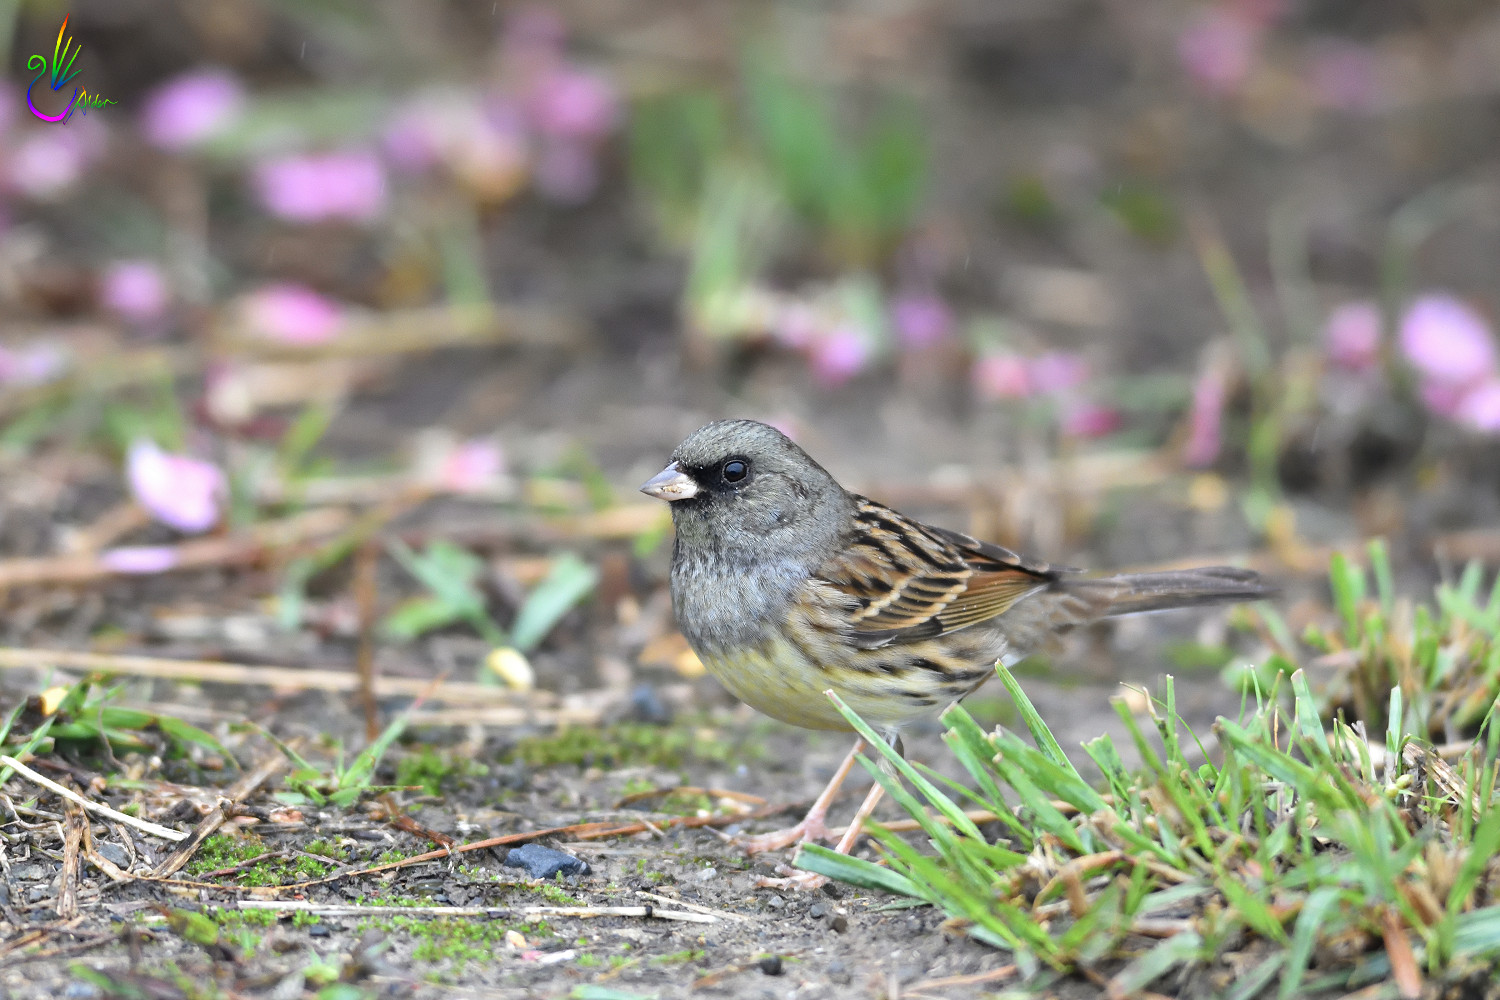 Black-faced_Bunting_7566